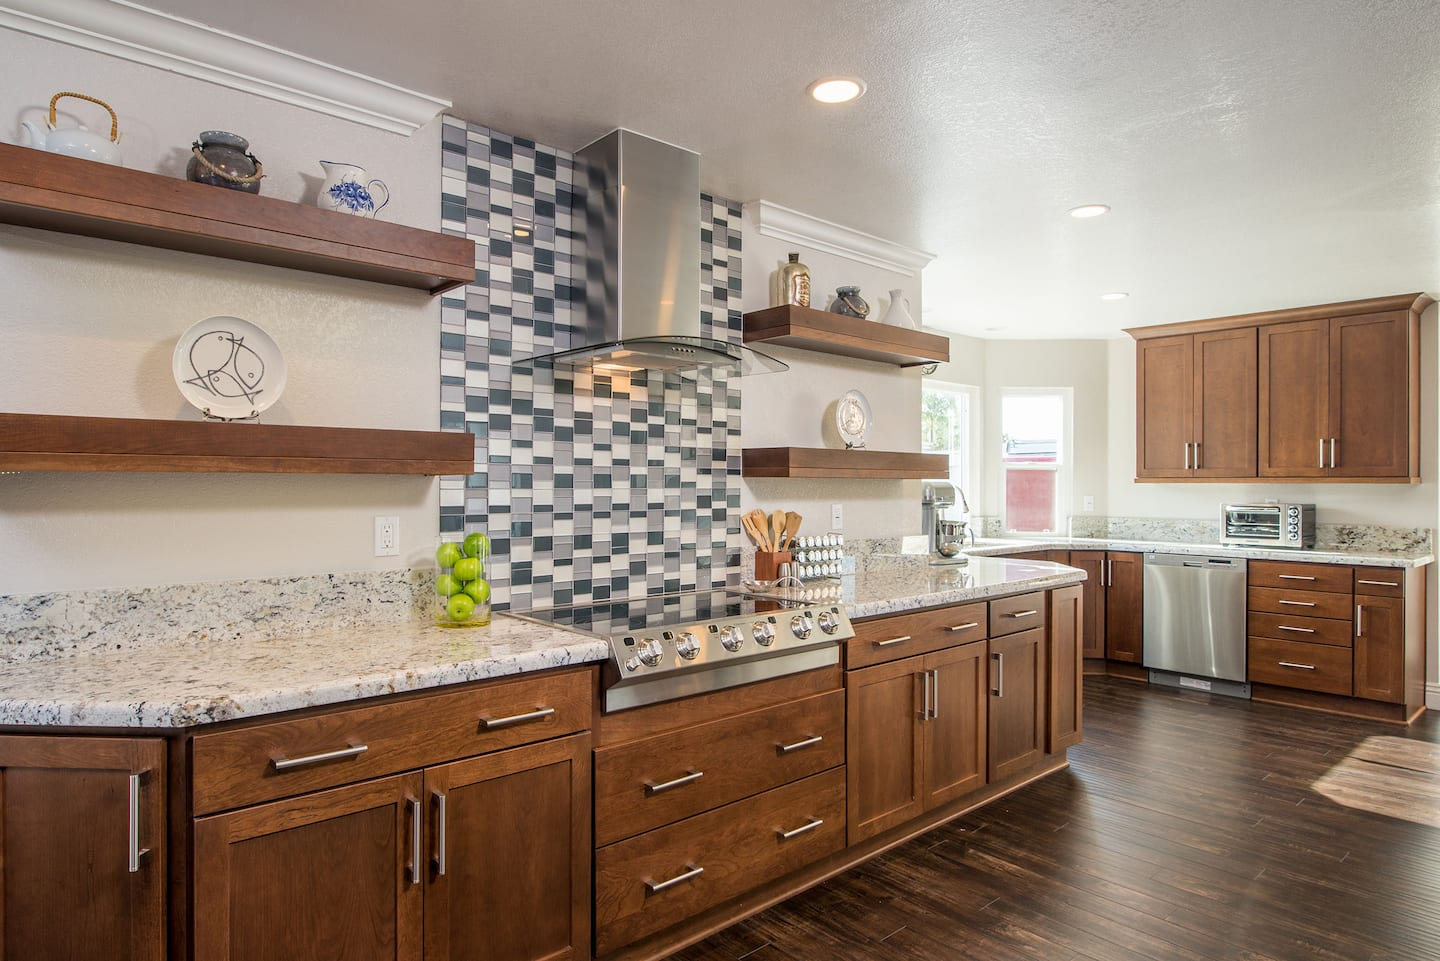 Is it Smart to Finance a Home Remodel